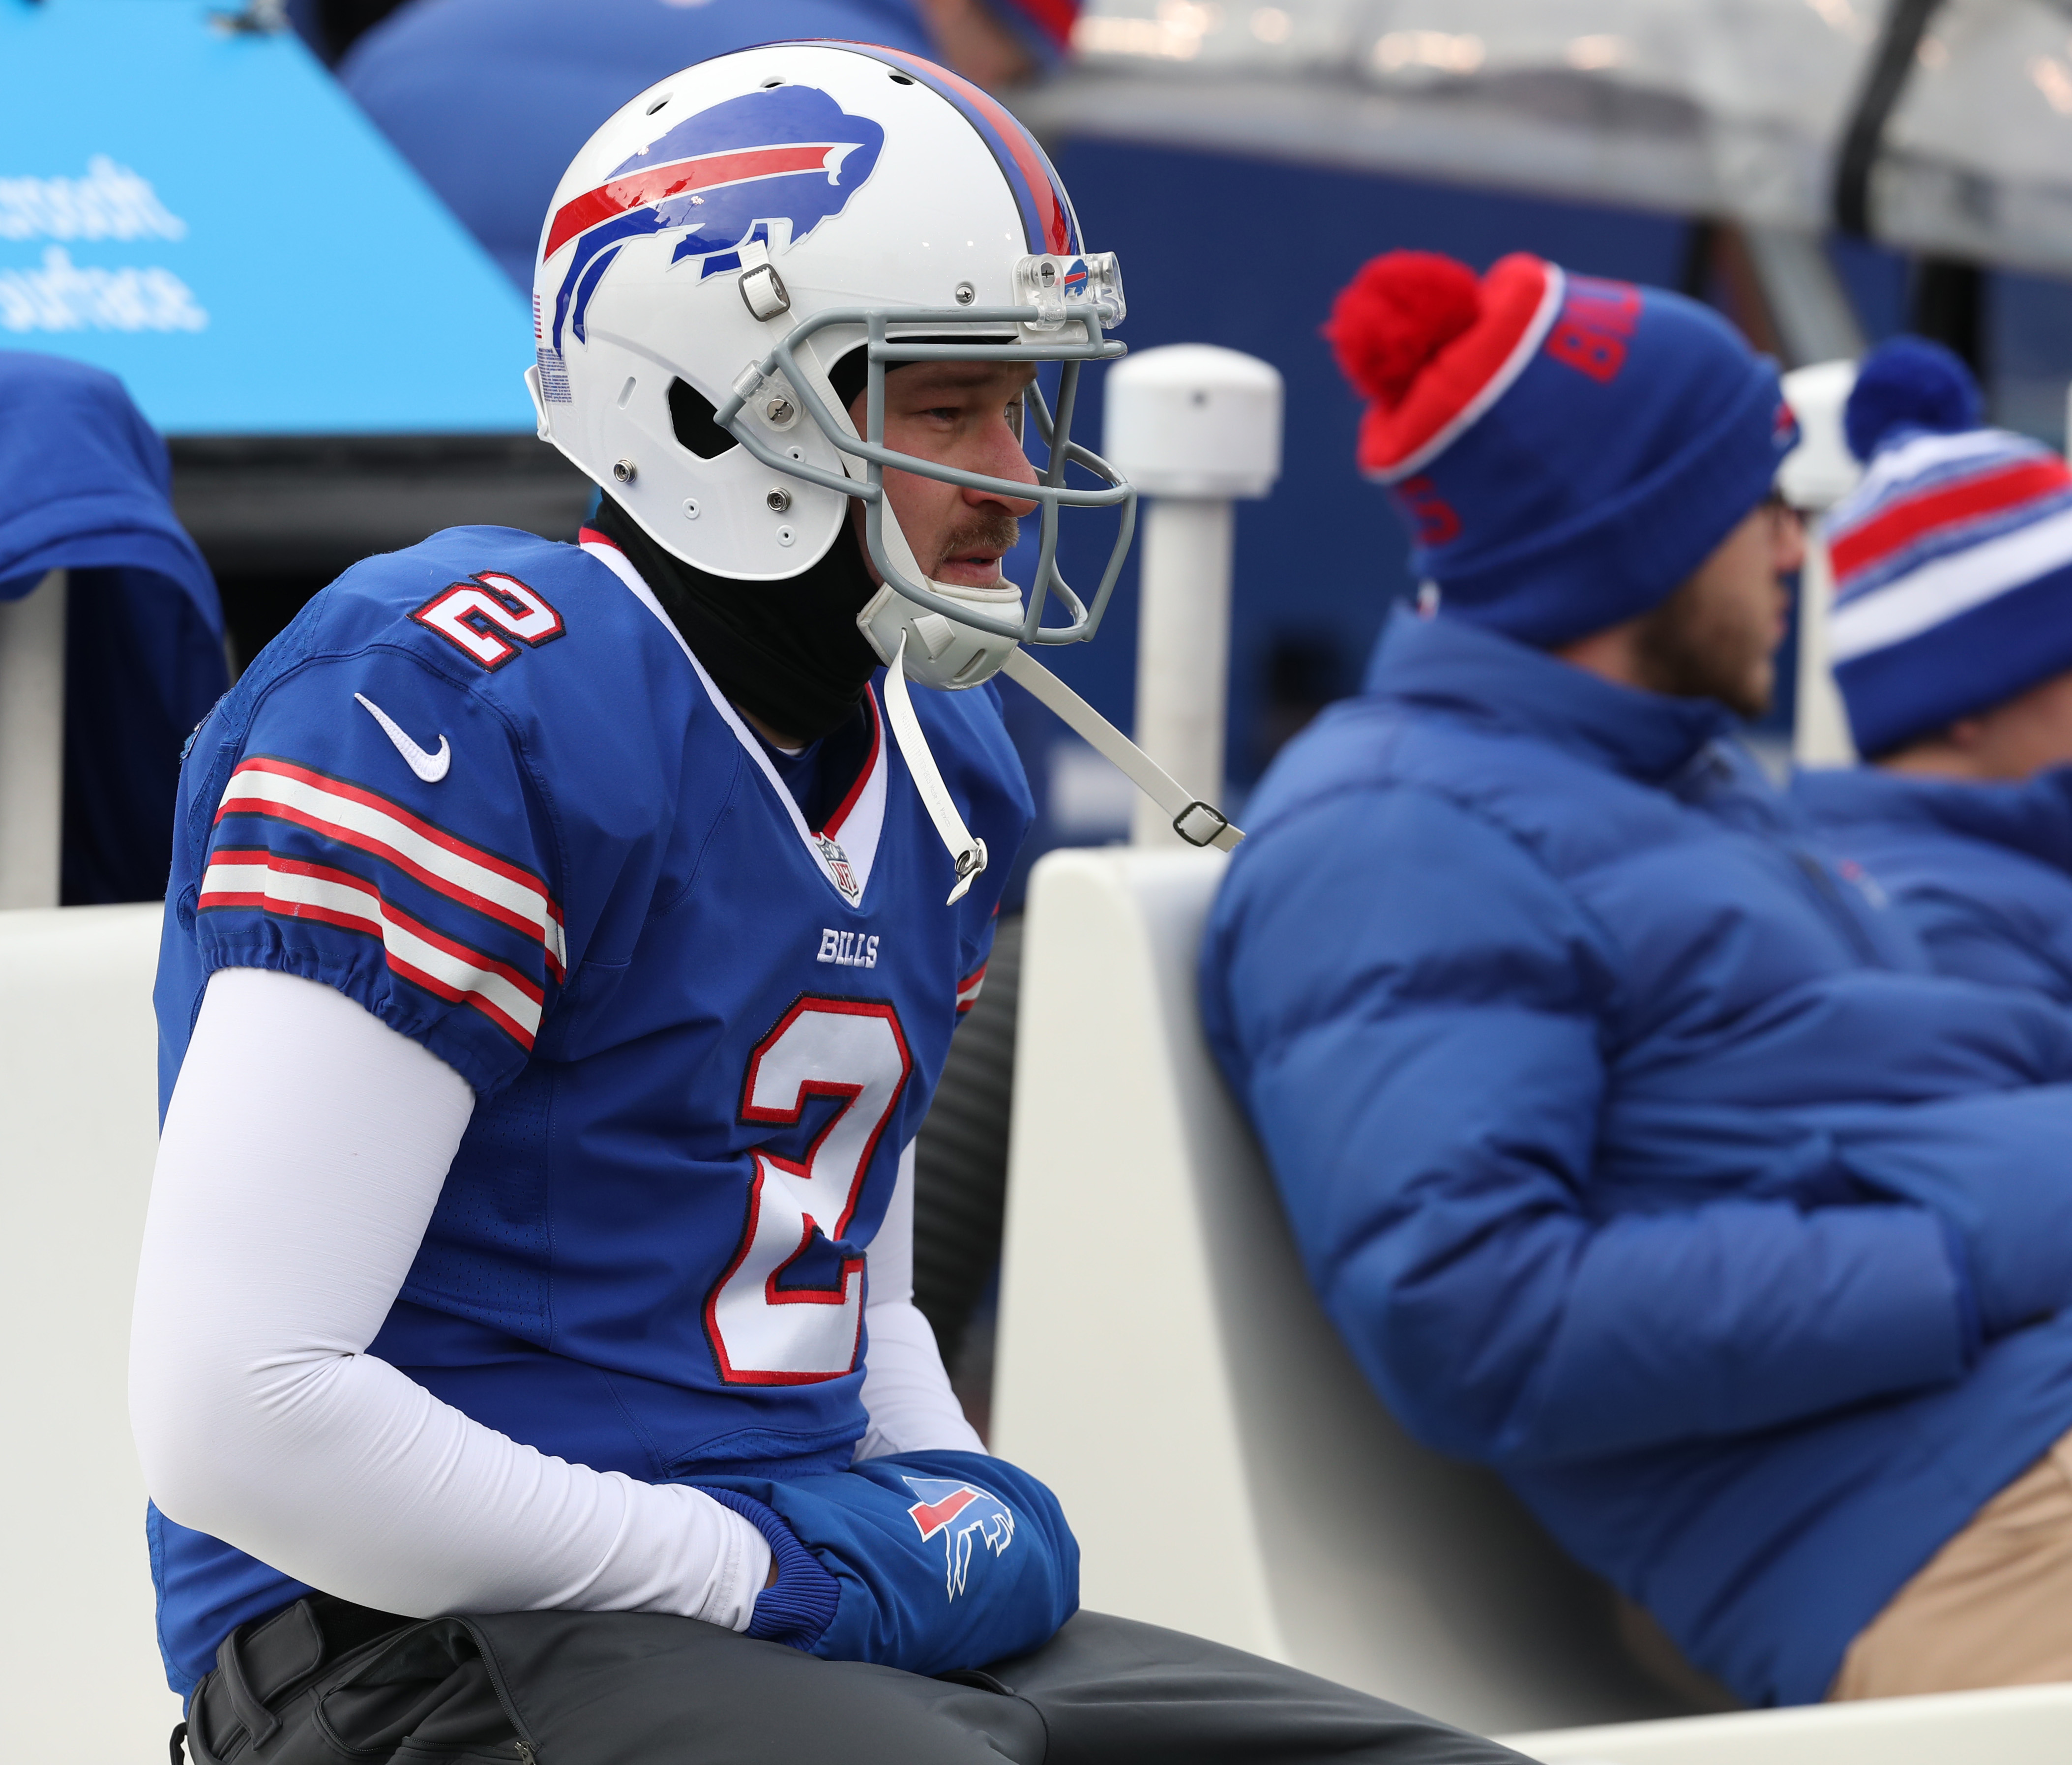 Bills kicker Dan Carpenter missed his fourth extra point of the season Sunday against the Browns. (James P. McCoy/Buffalo News)